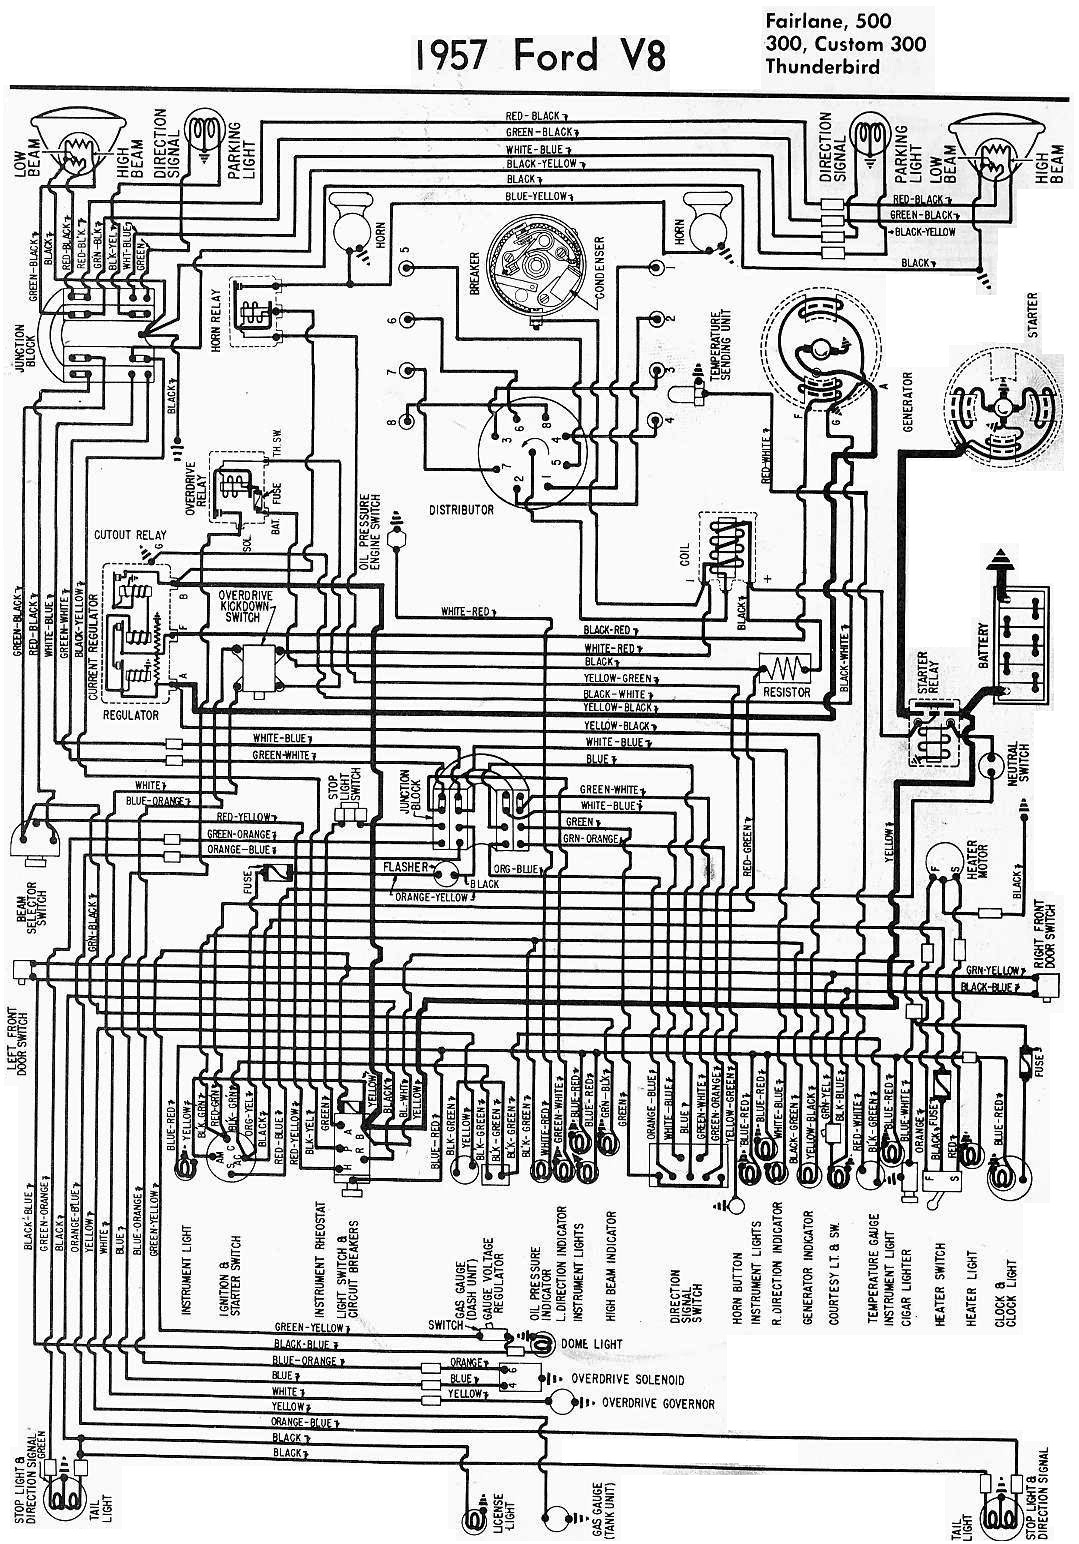 Diagram Electrical Wiring Marathon Electric Motor Problems June 2011 All About Diagrams